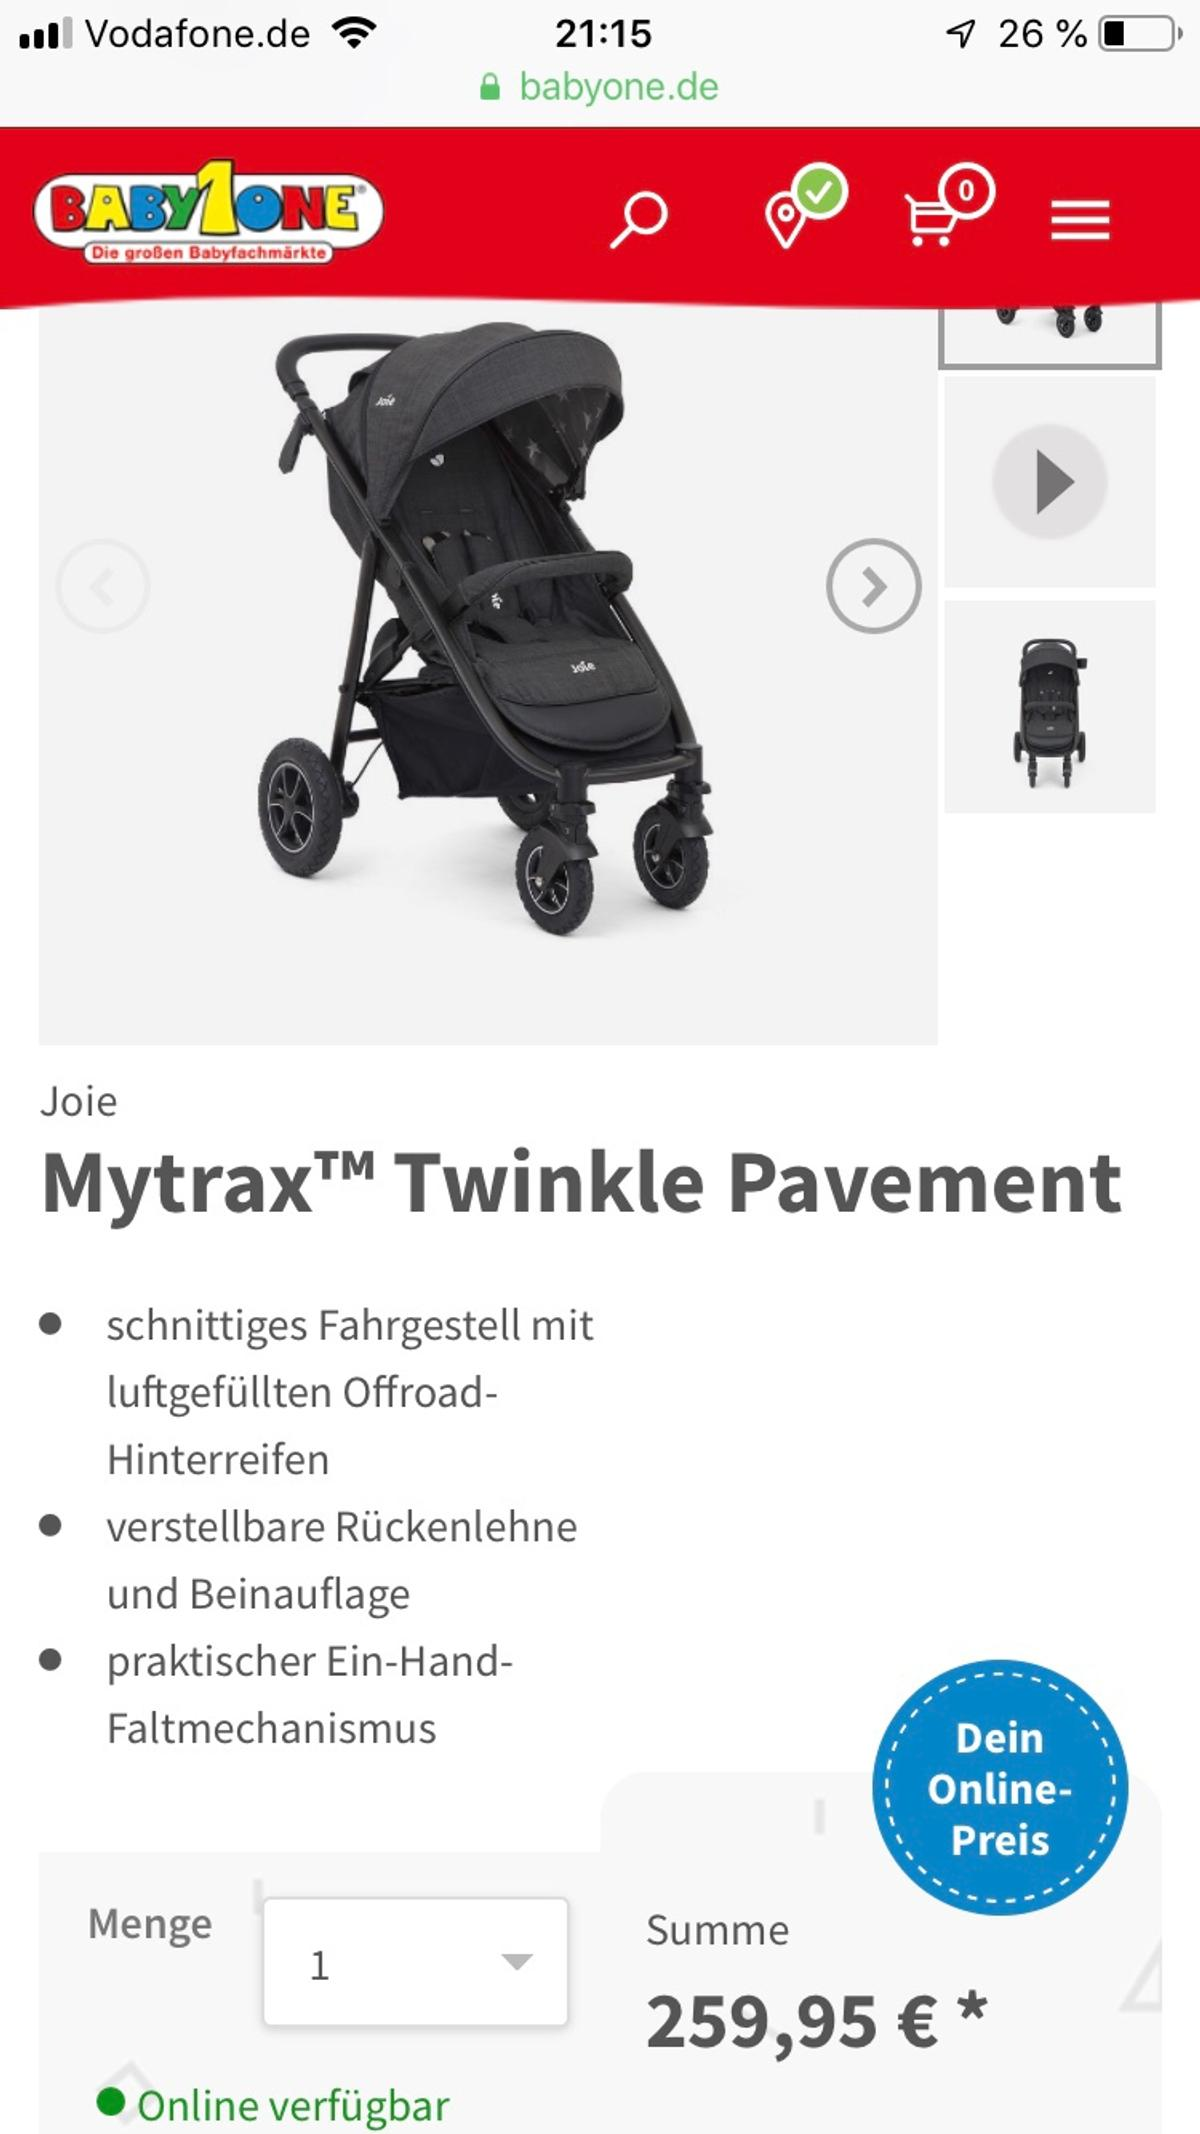 Joie Nitro Babyone Joie Buggy Mirus In 67067 Ludwigshafen Am Rhein For 70 00